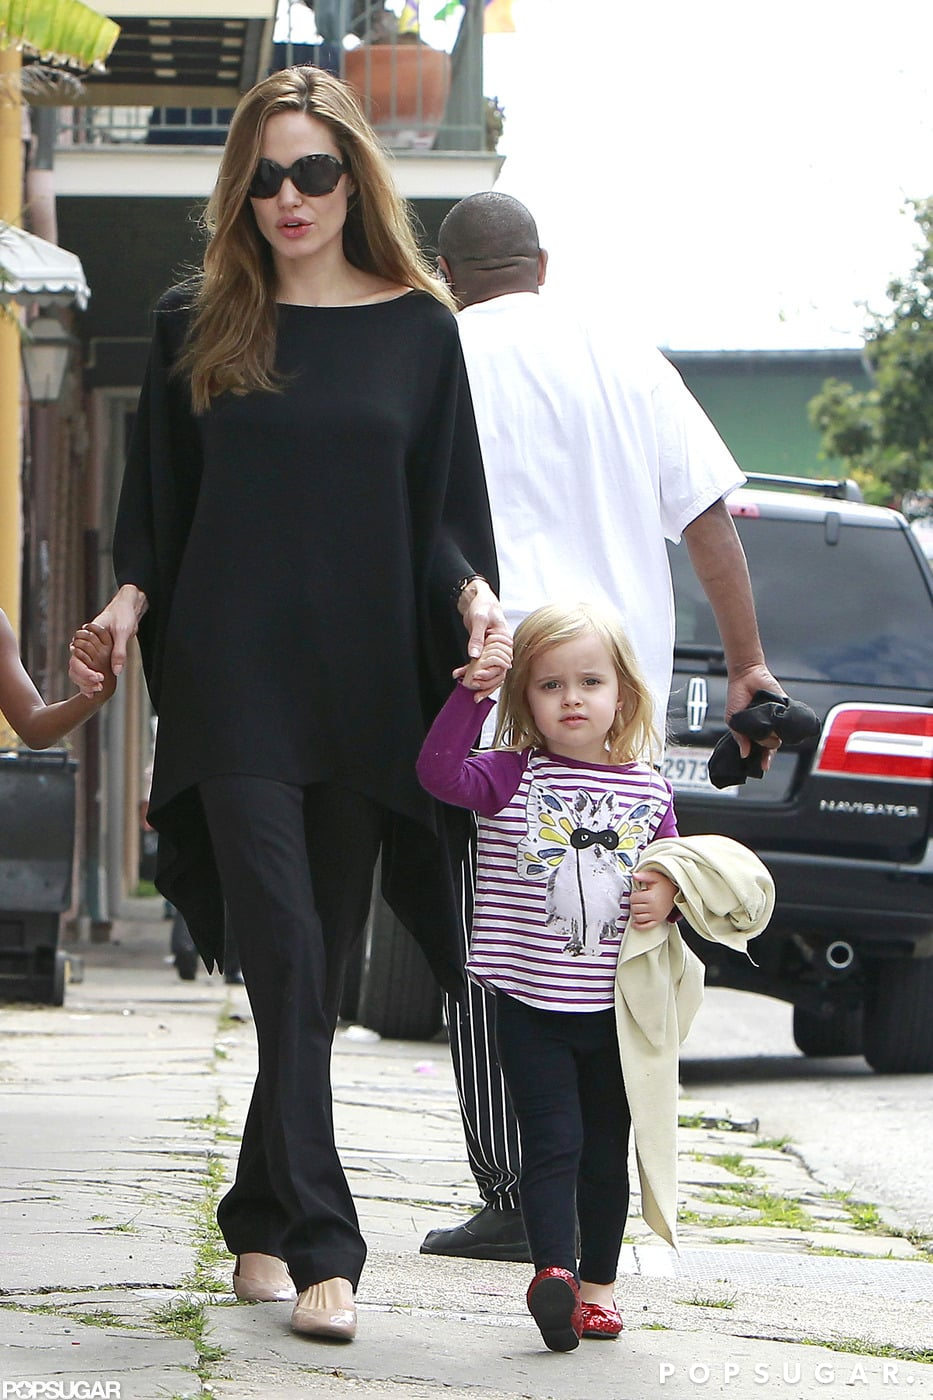 Angelina Jolie took Vivienne Jolie-Pitt by the hand during a visit to the market in New Orleans in March 2012.